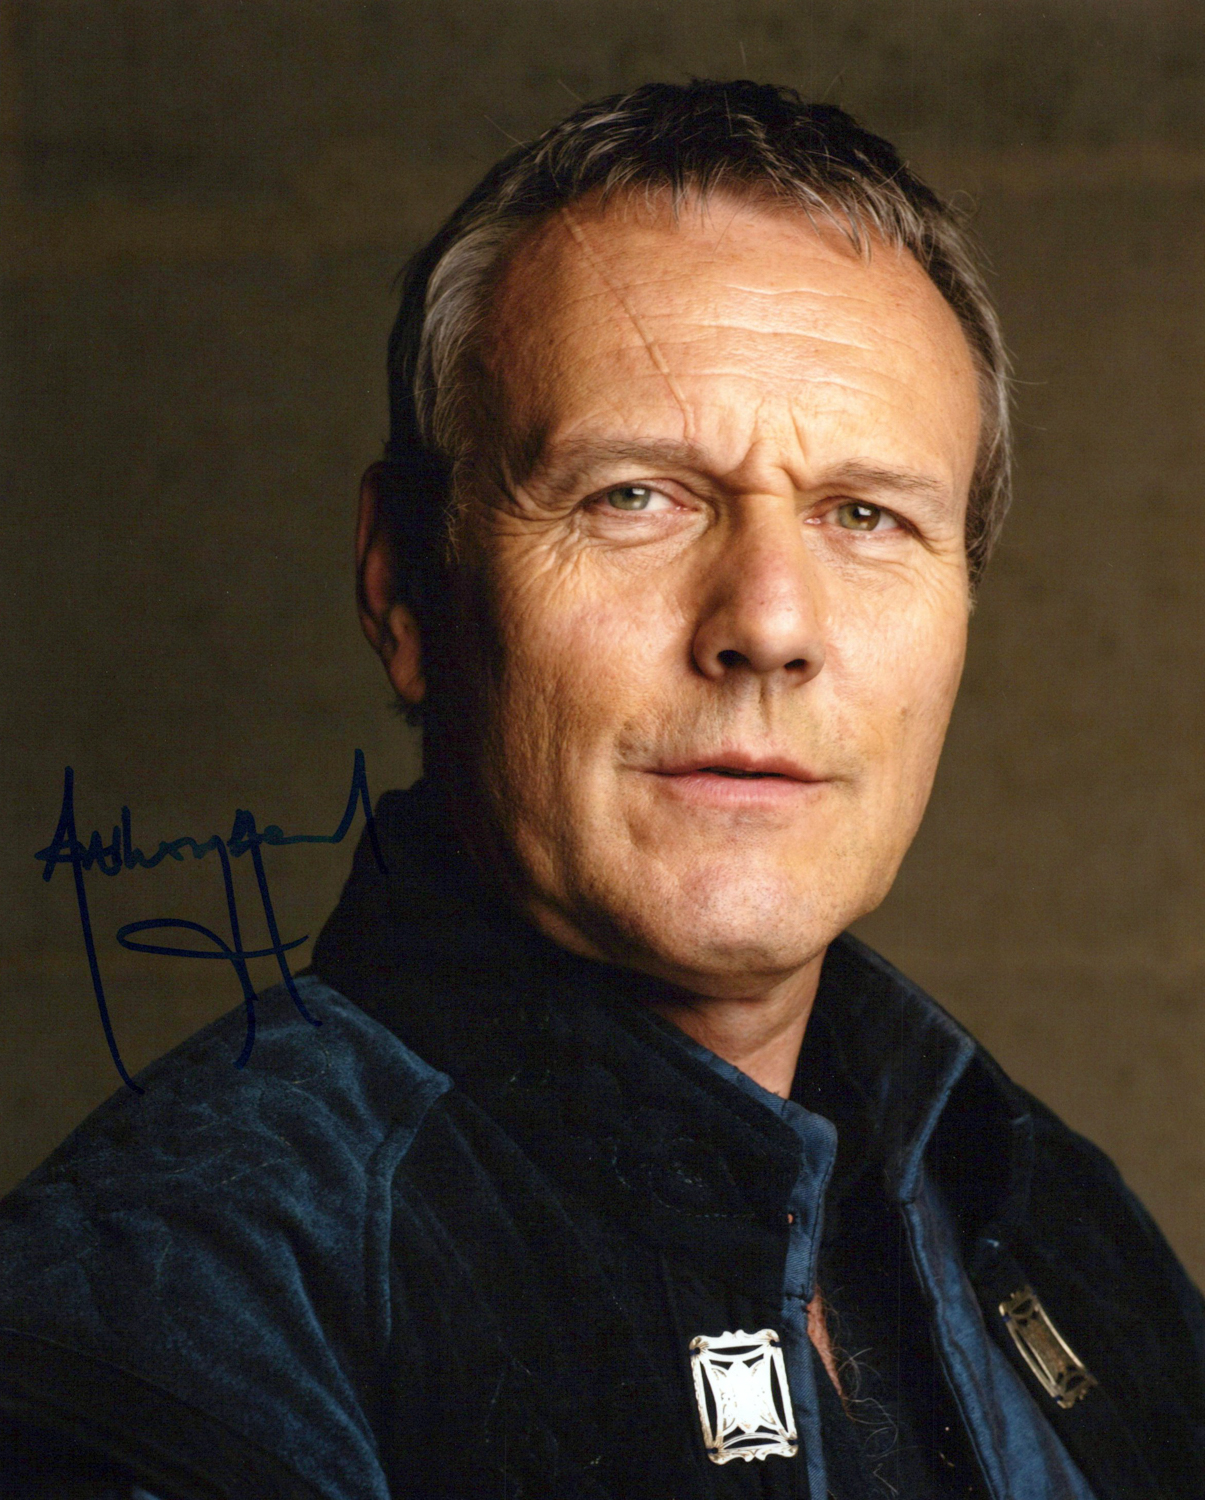 Anthony Head Original Autogramm auf Foto 20x25cm - Merlin